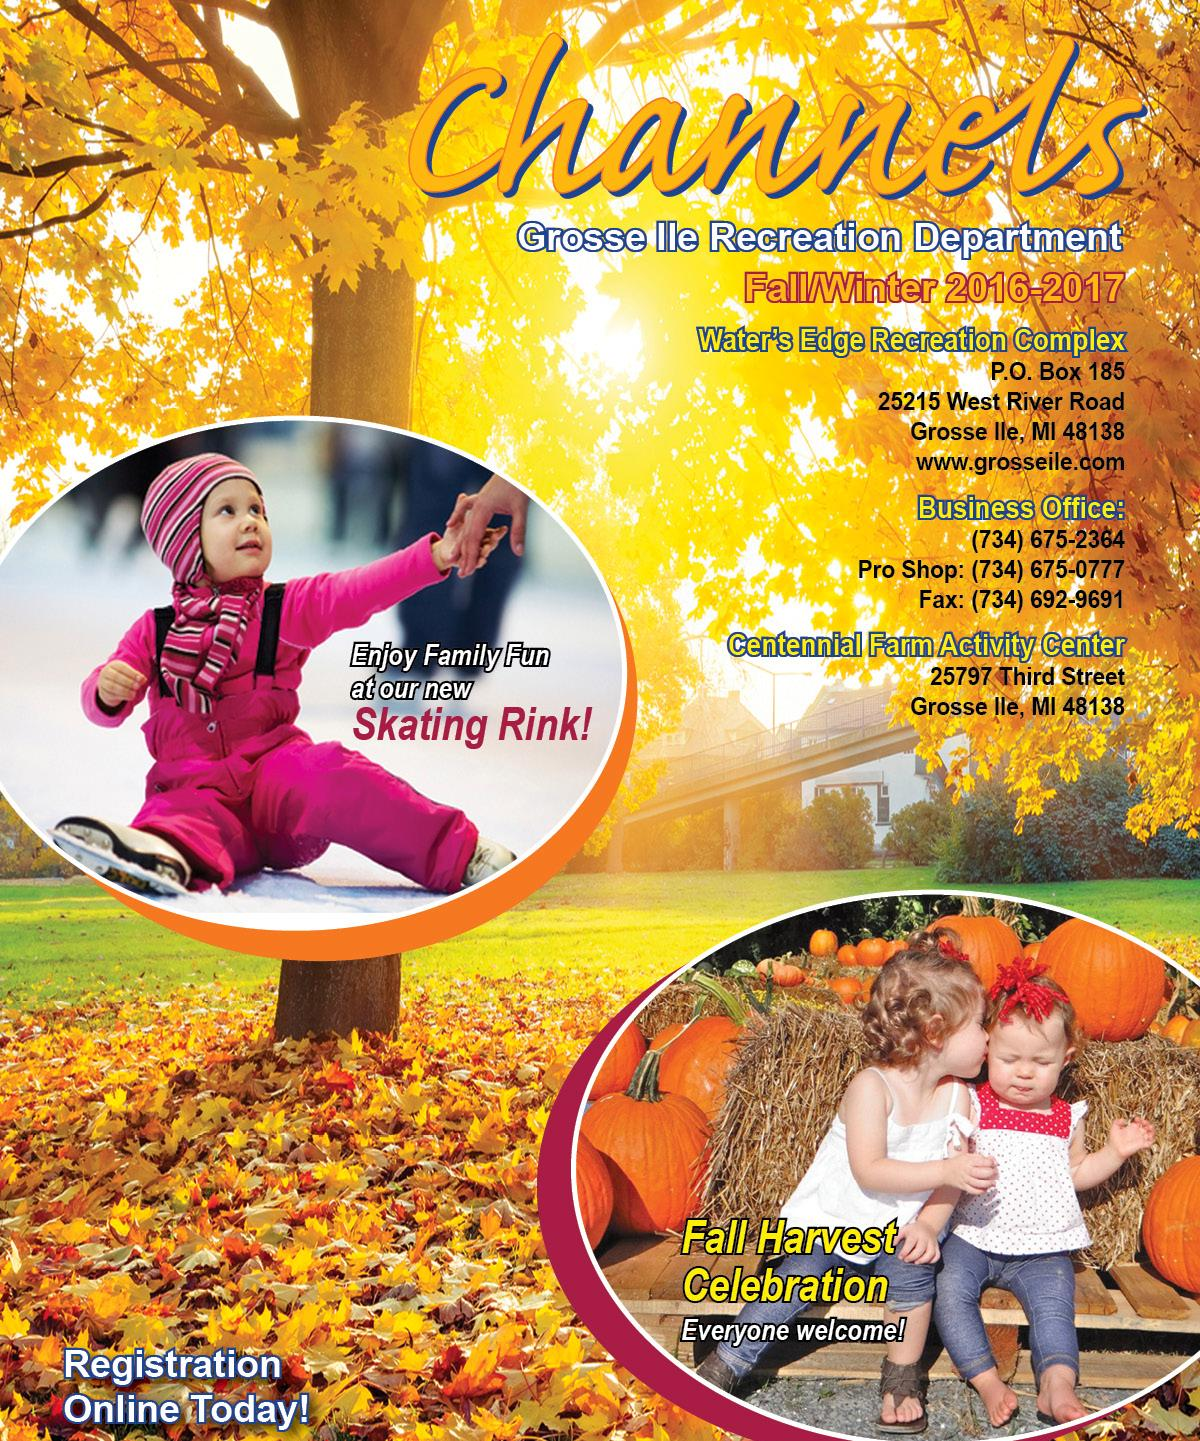 GI Channels Fall cover - Copy (2)